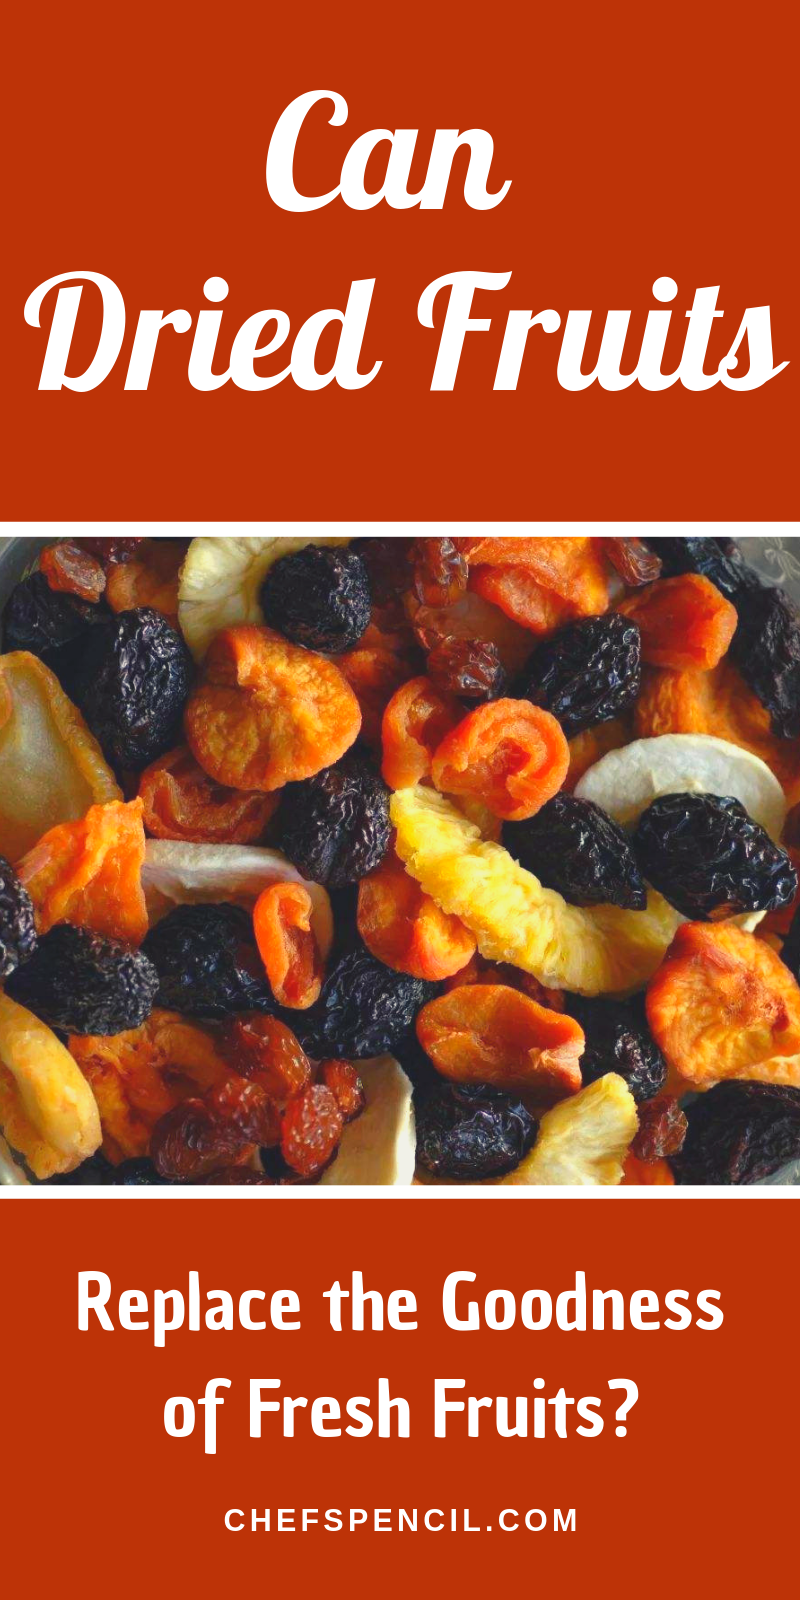 Can dried fruits replace the goodness of fresh fruits? | Chefs